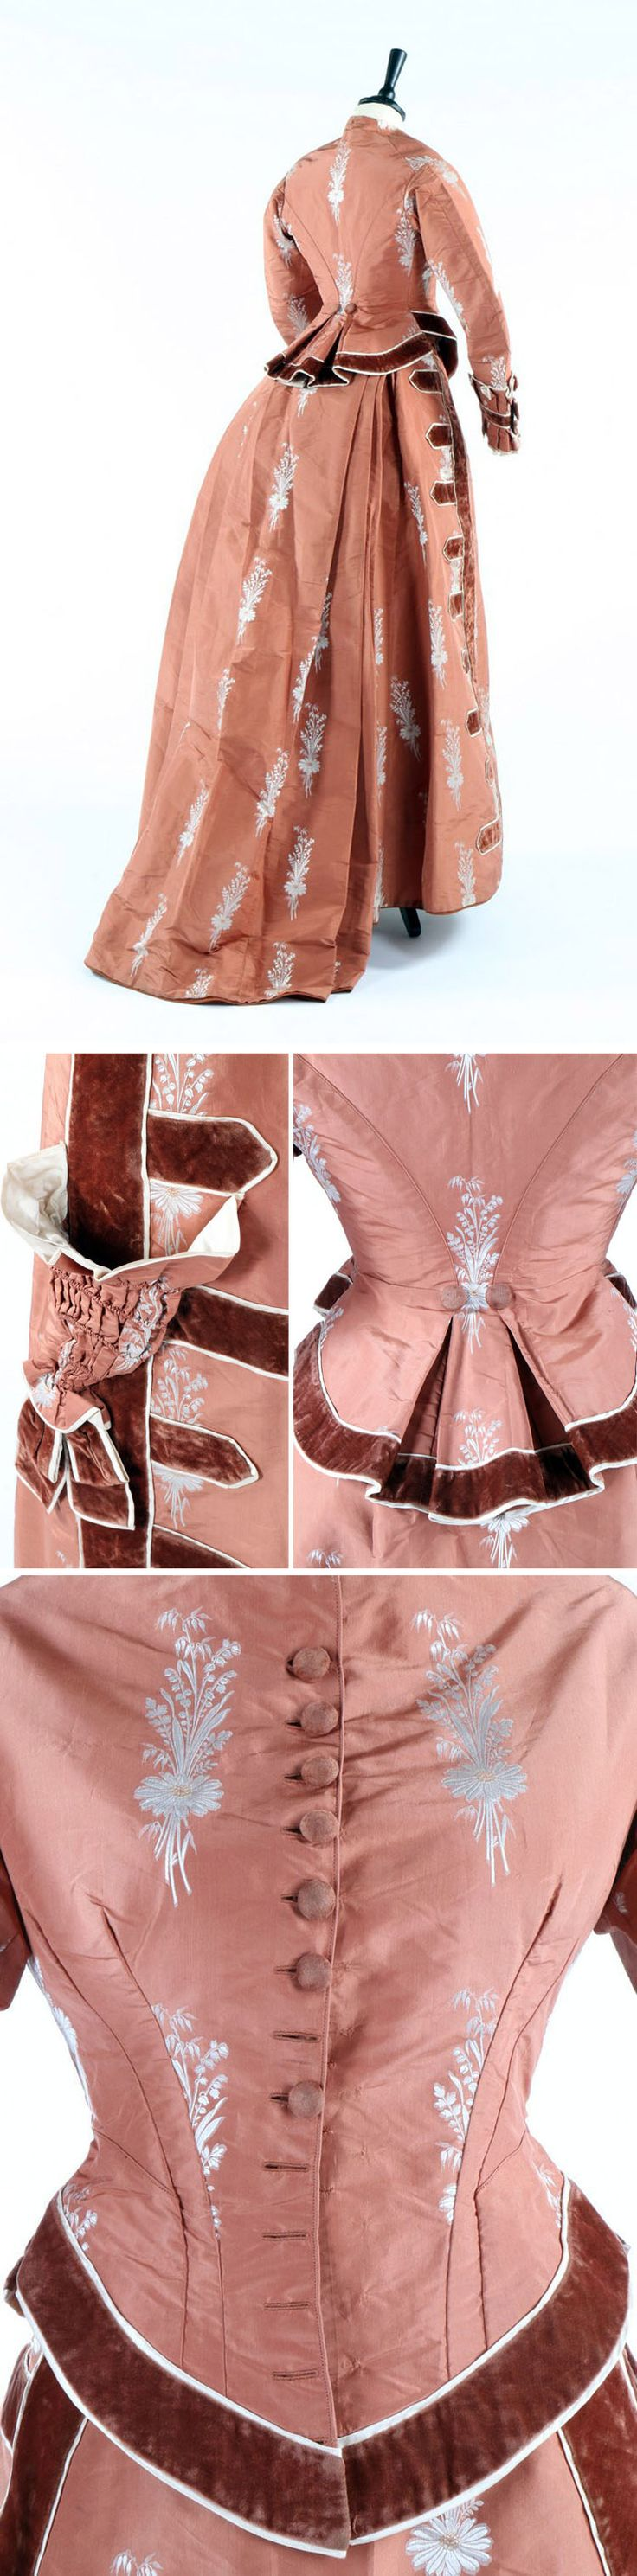 Dress ca. 1876, possibly modified in early 1880s. Silk taffeta in cinnamon brocade figured with ivory floral sprays. Bodice has low curved basque in front and broad pleats in back, is edged in ruffled pleats & lined in ivory satin. Borders trimmed with velvet ribbon. Separate skirt has ruched & pleated conical pocket in front lined in ivory. Kerry Taylor Auctions